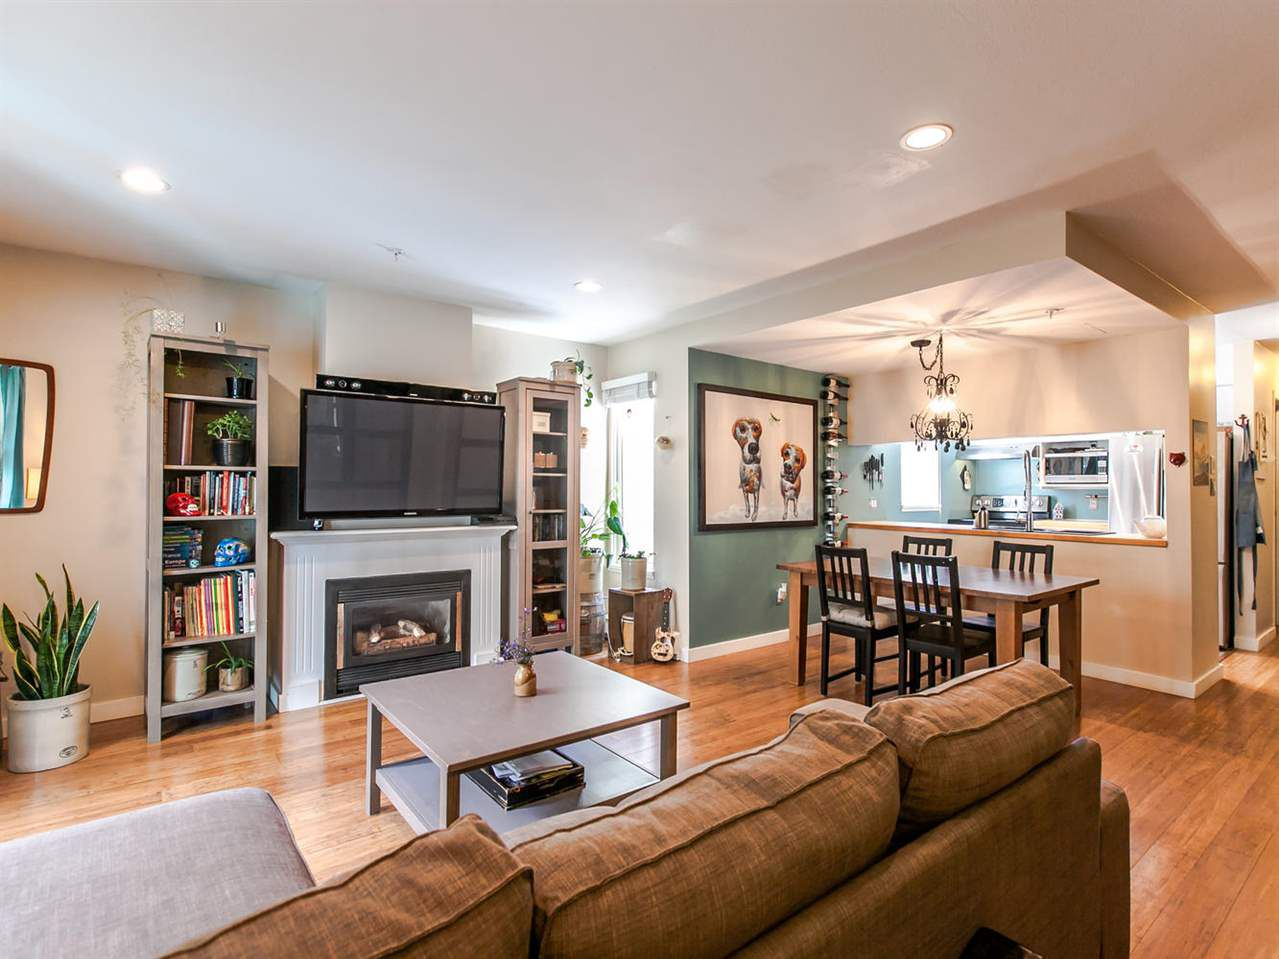 Main Photo: 104 1554 BURNABY STREET in Vancouver: West End VW Condo for sale (Vancouver West)  : MLS®# R2089481